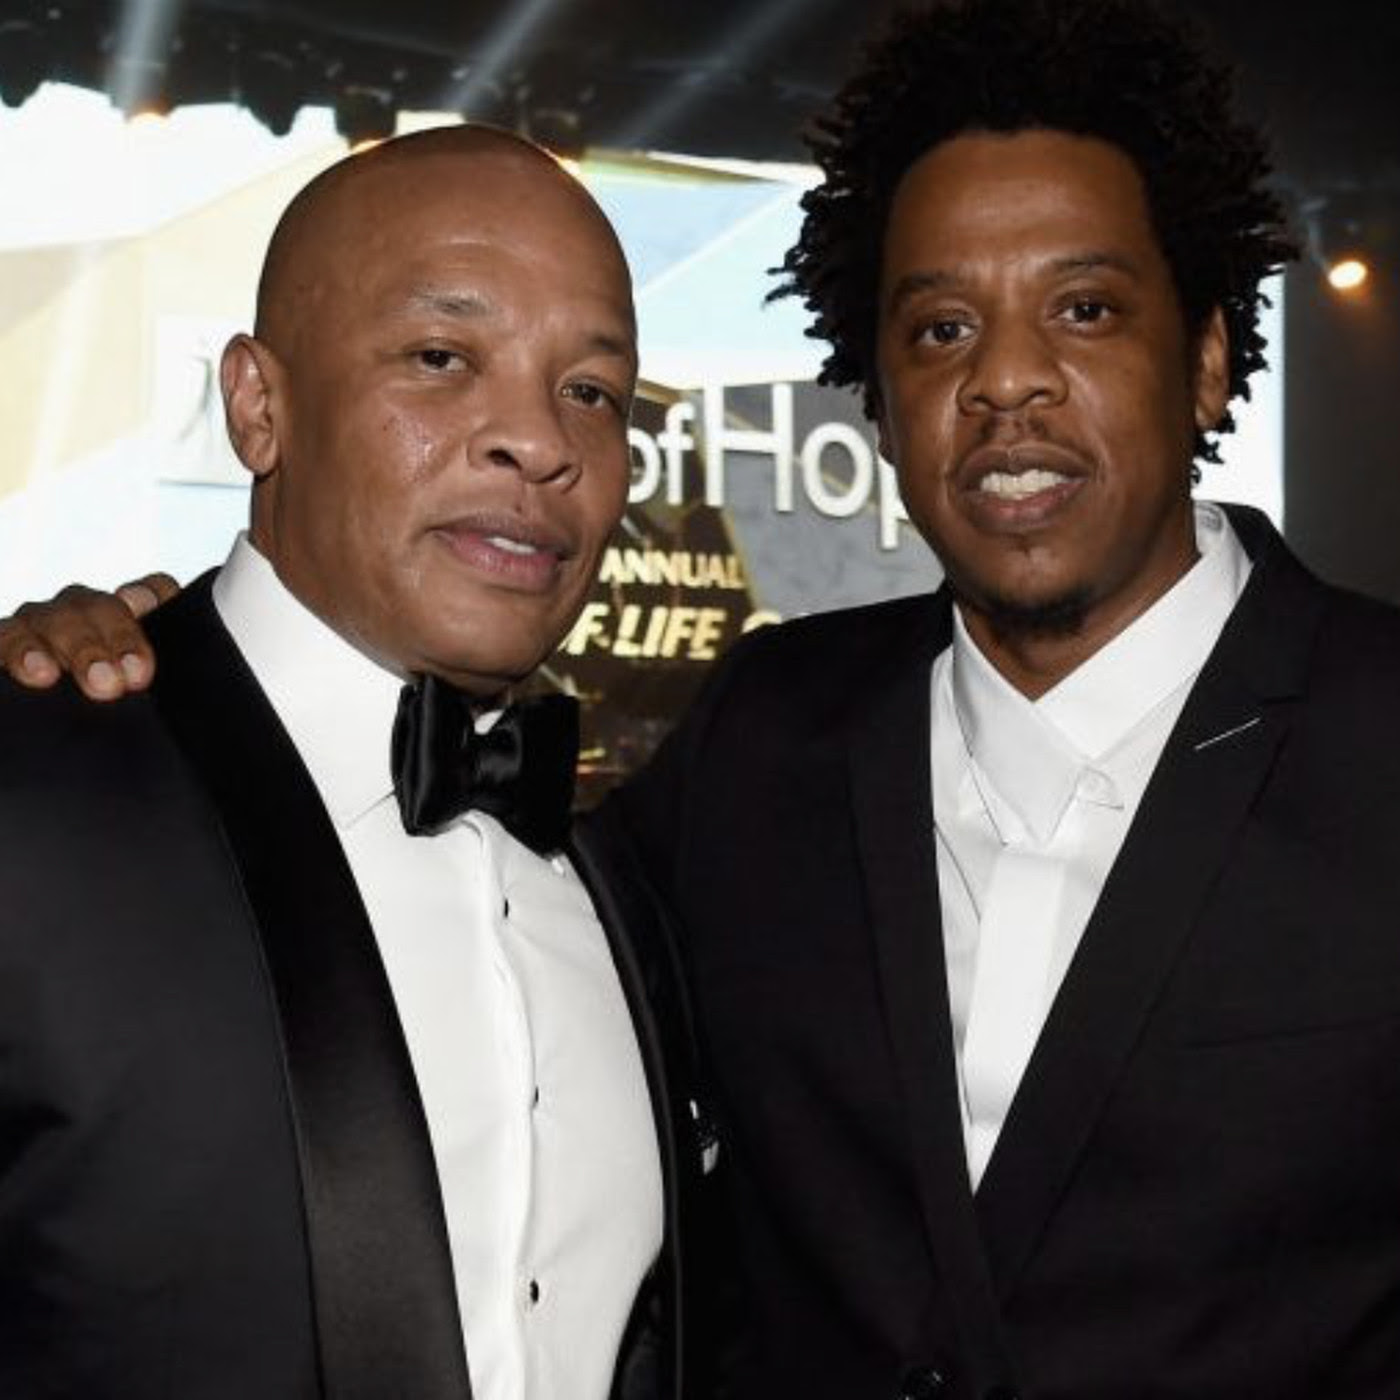 Dr. Dre applauds JAY-Z for LVMH champagne deal